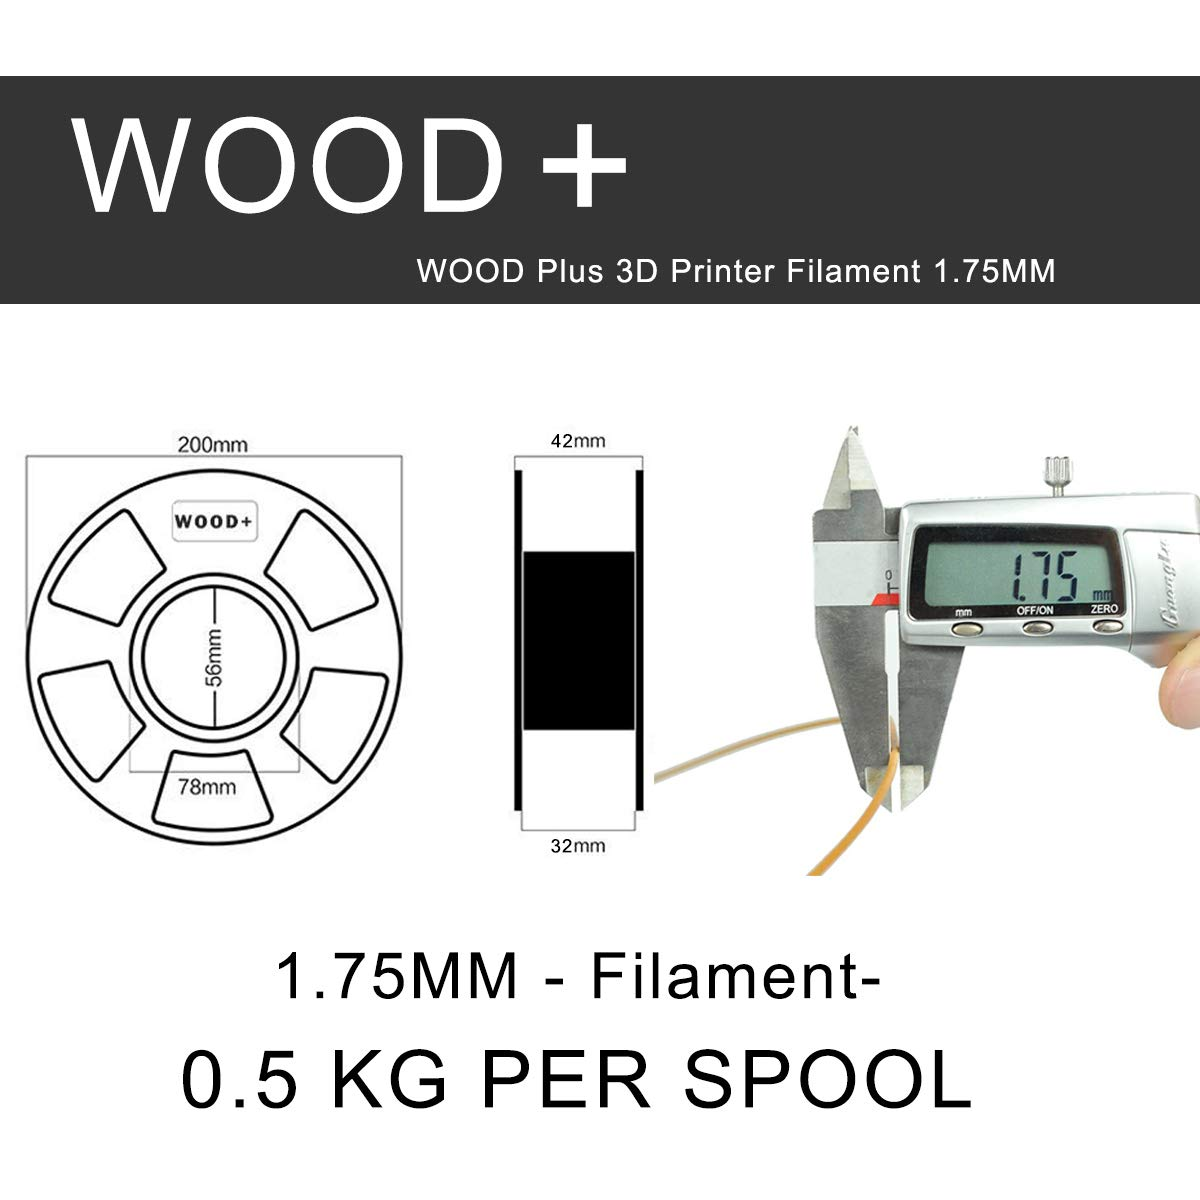 EKOHOME 0.5KG//180m 3D Filament for 3D Printer // 3D Print Pen Tactile Feel of Wood 3D Print Filament Wood PLA+ 1.75mm Wood 0.5KG Vacuumed Packed -0.02mm Tolerance RoHS Approved and Non-toxic